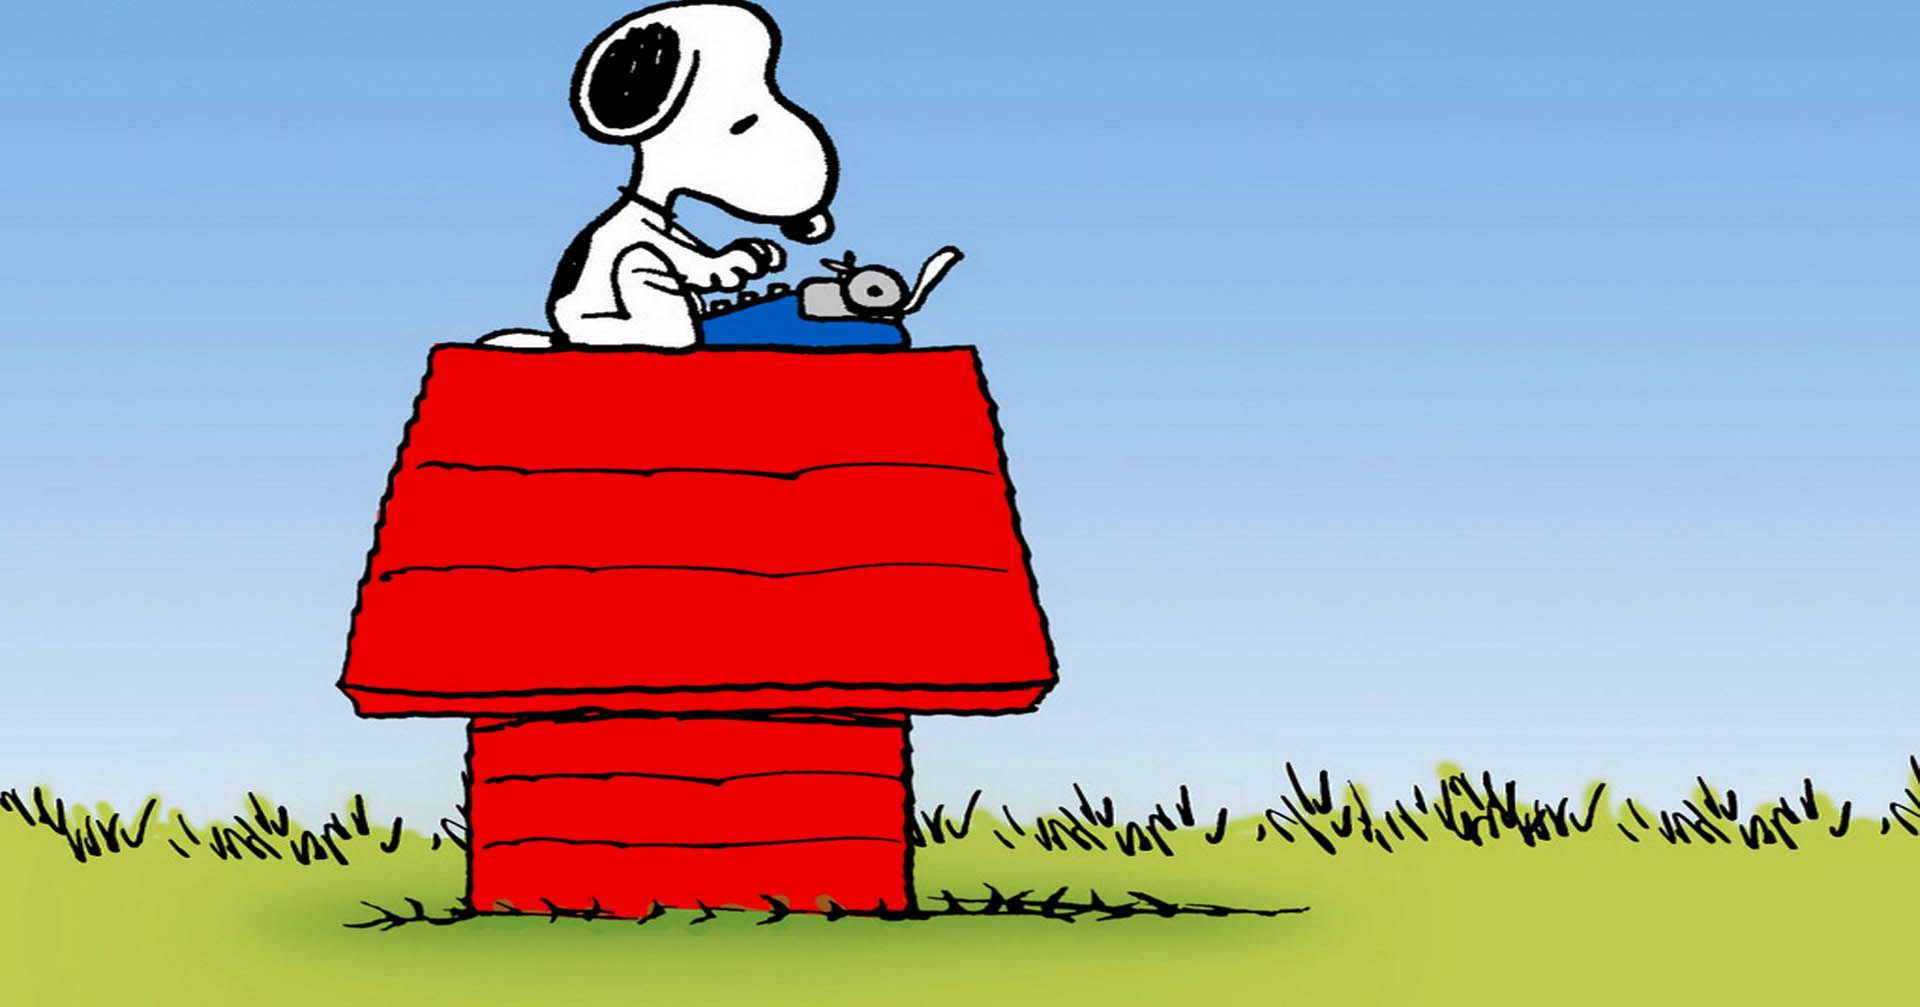 Snoopy High Definition Backgrounds And Wallpapers HD Wallpapers Download Free Images Wallpaper [1000image.com]